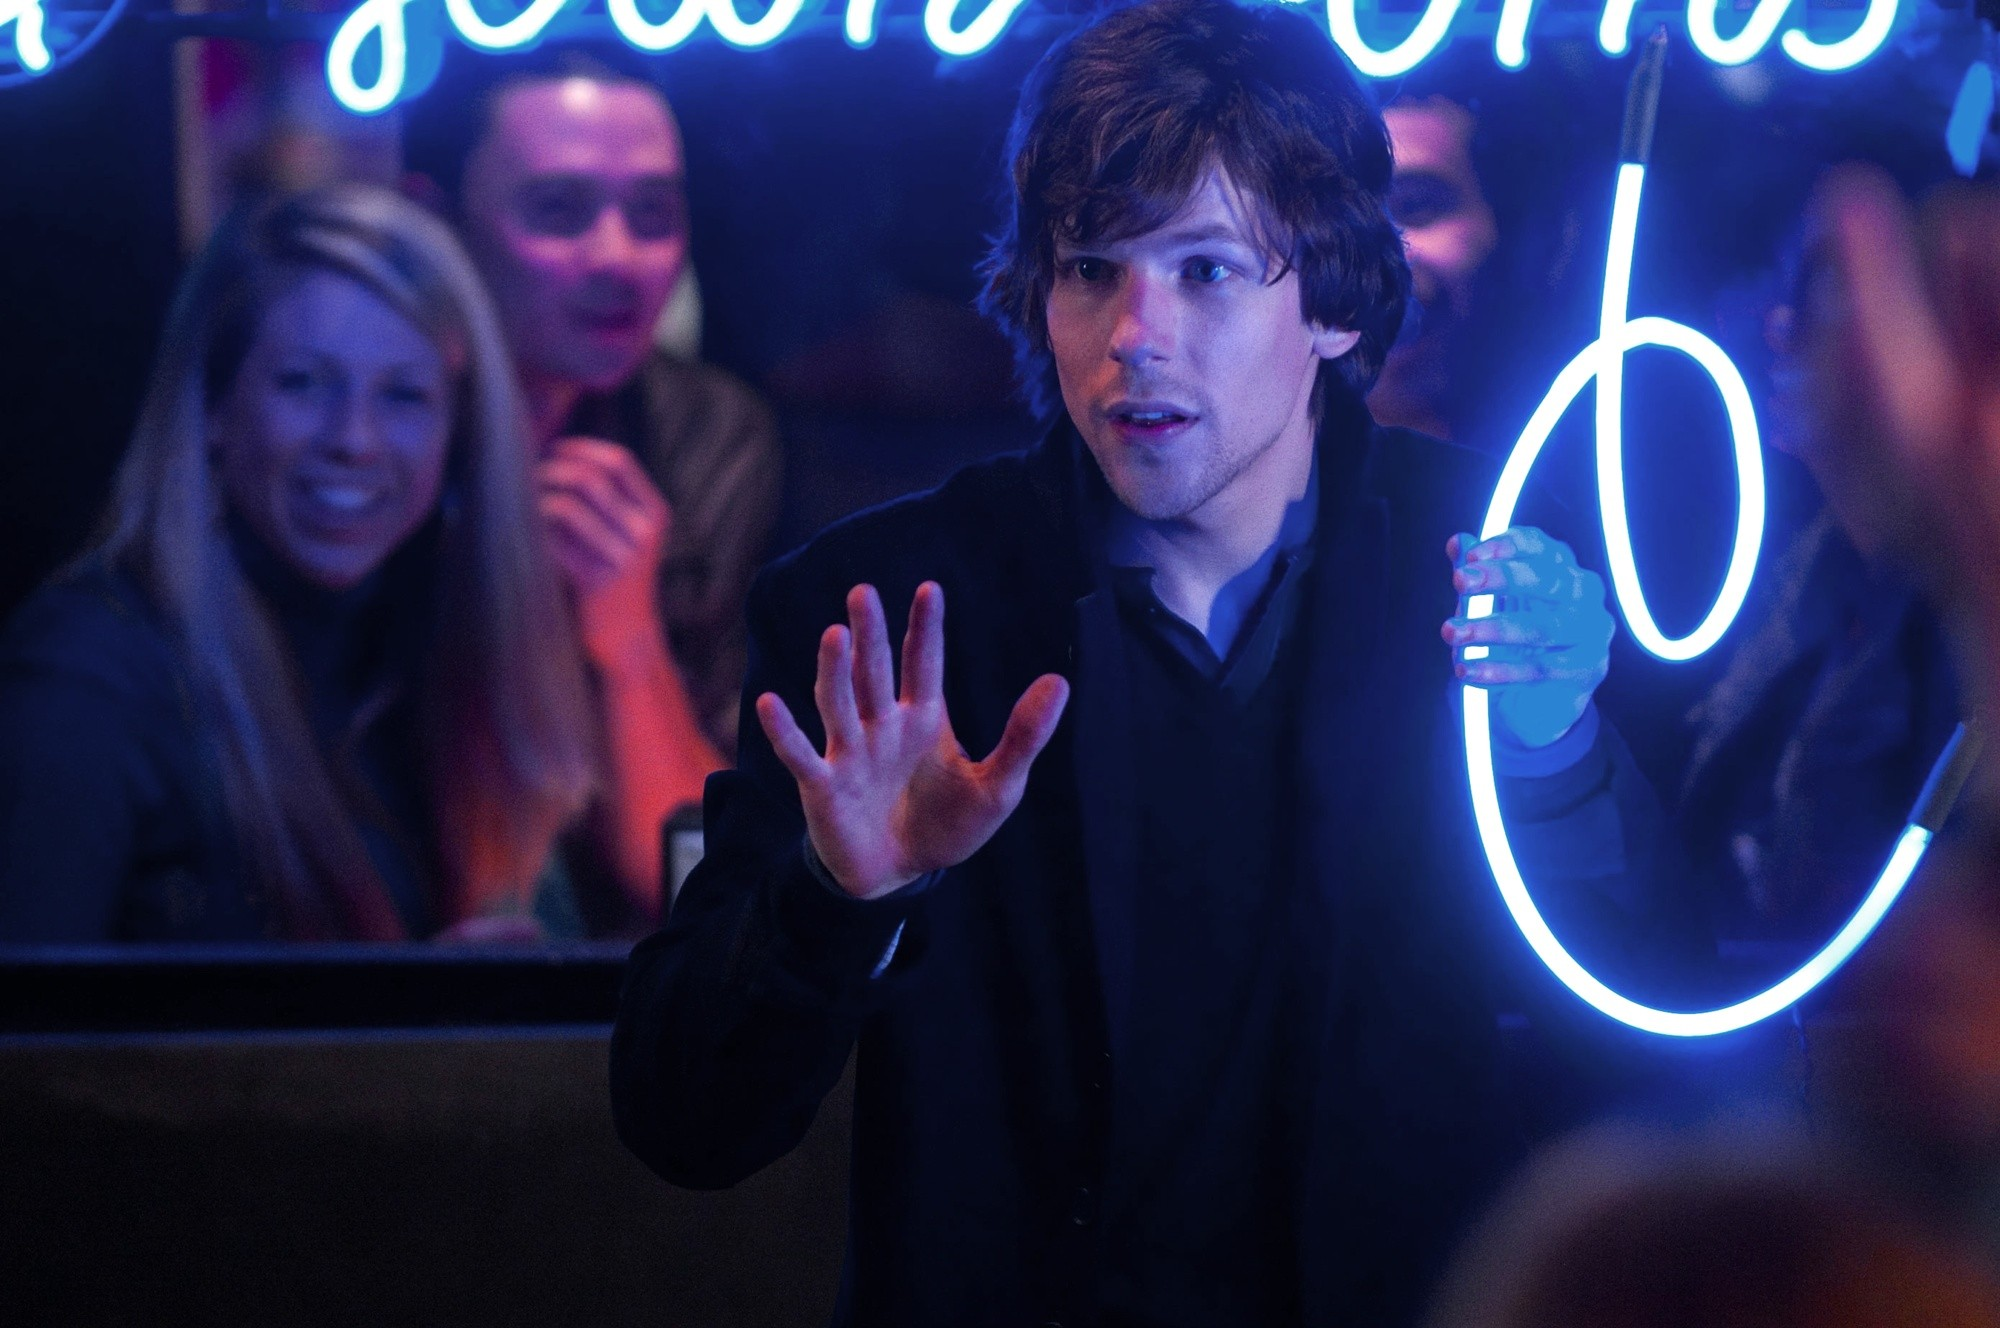 Jesse Eisenberg stars as Michael Atlas in Summit Entertainment's Now You See Me (2013)